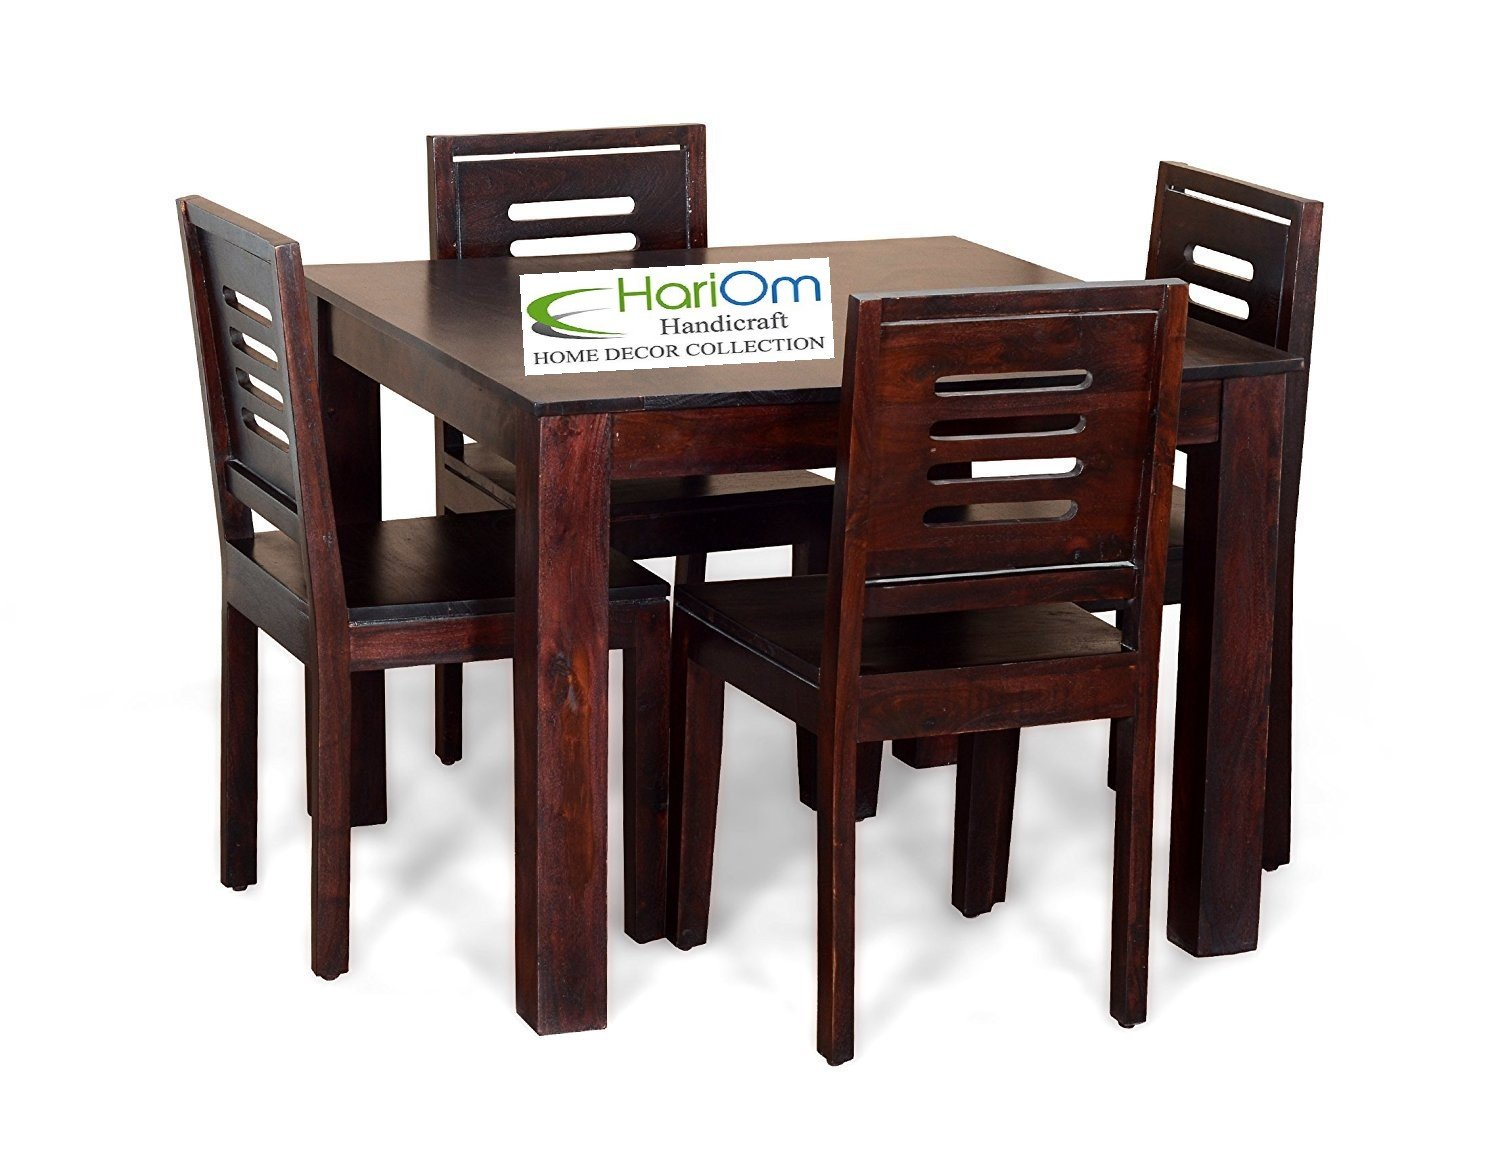 Hariom handicraft sheesham wood wooden dining set 4 seater dining table with chairs mahogany finish amazon in home kitchen